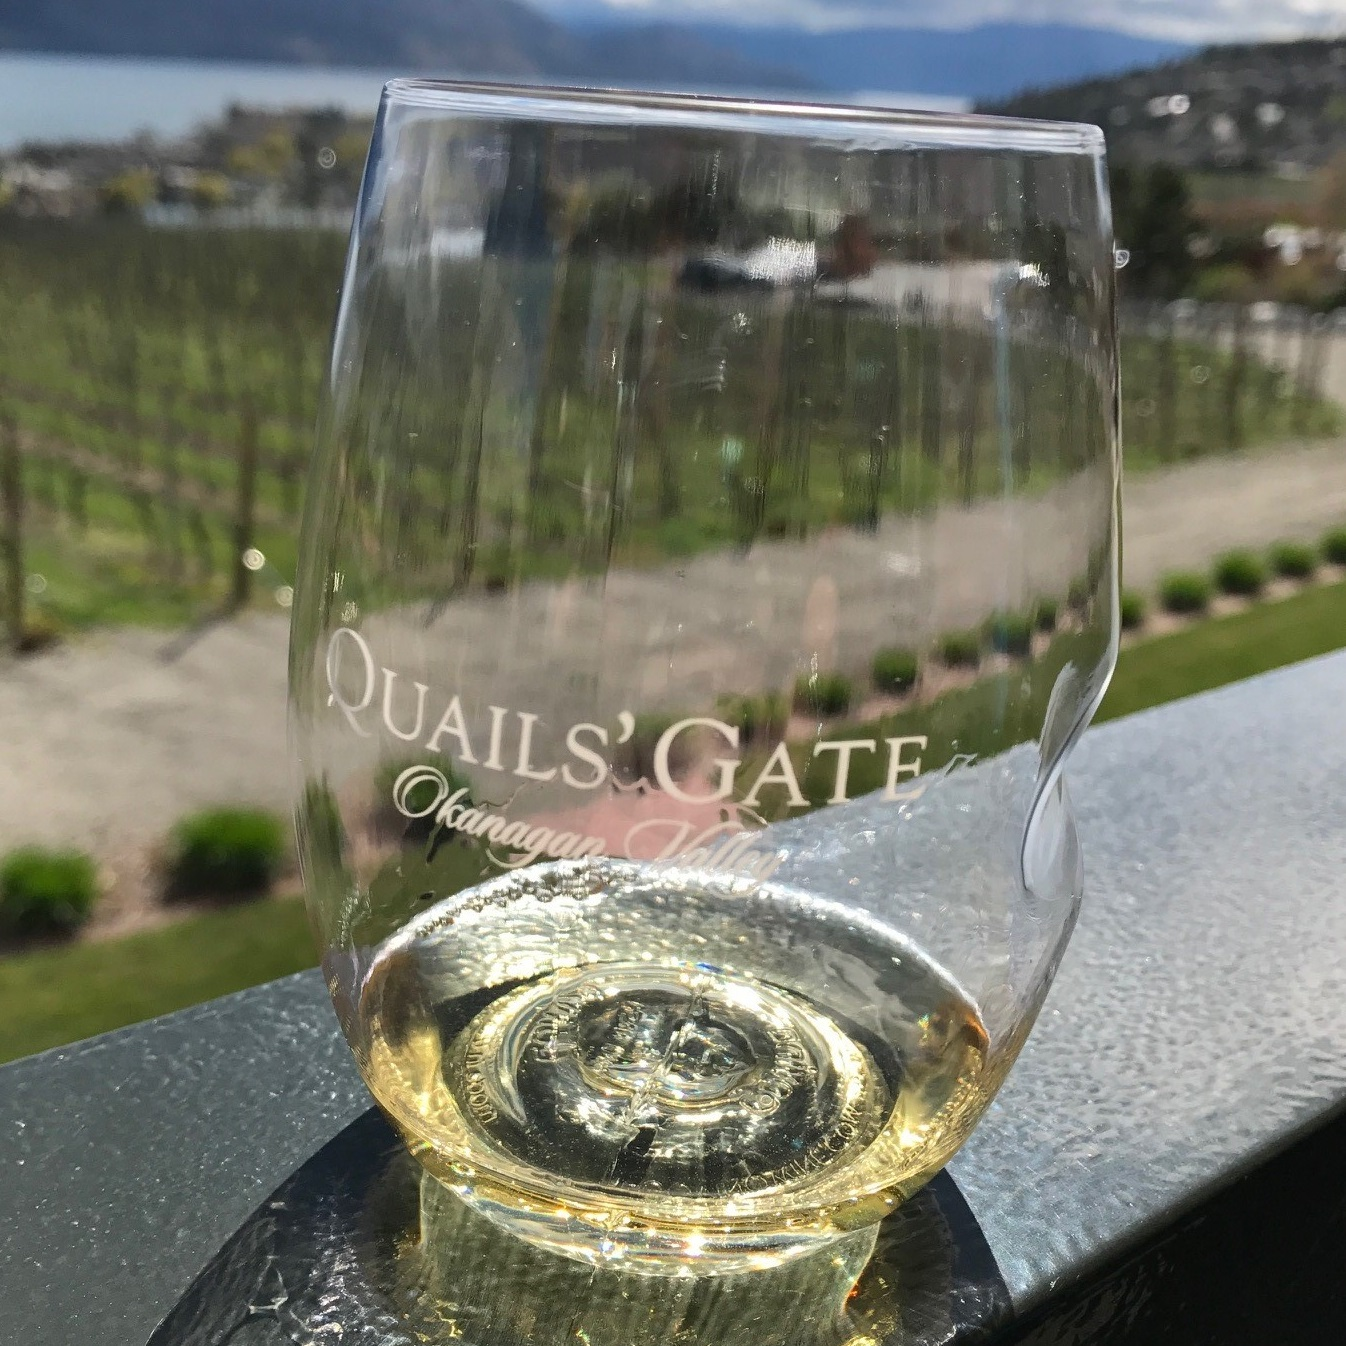 We have some amazing treasures in our valley...like Quail's Gate Winery